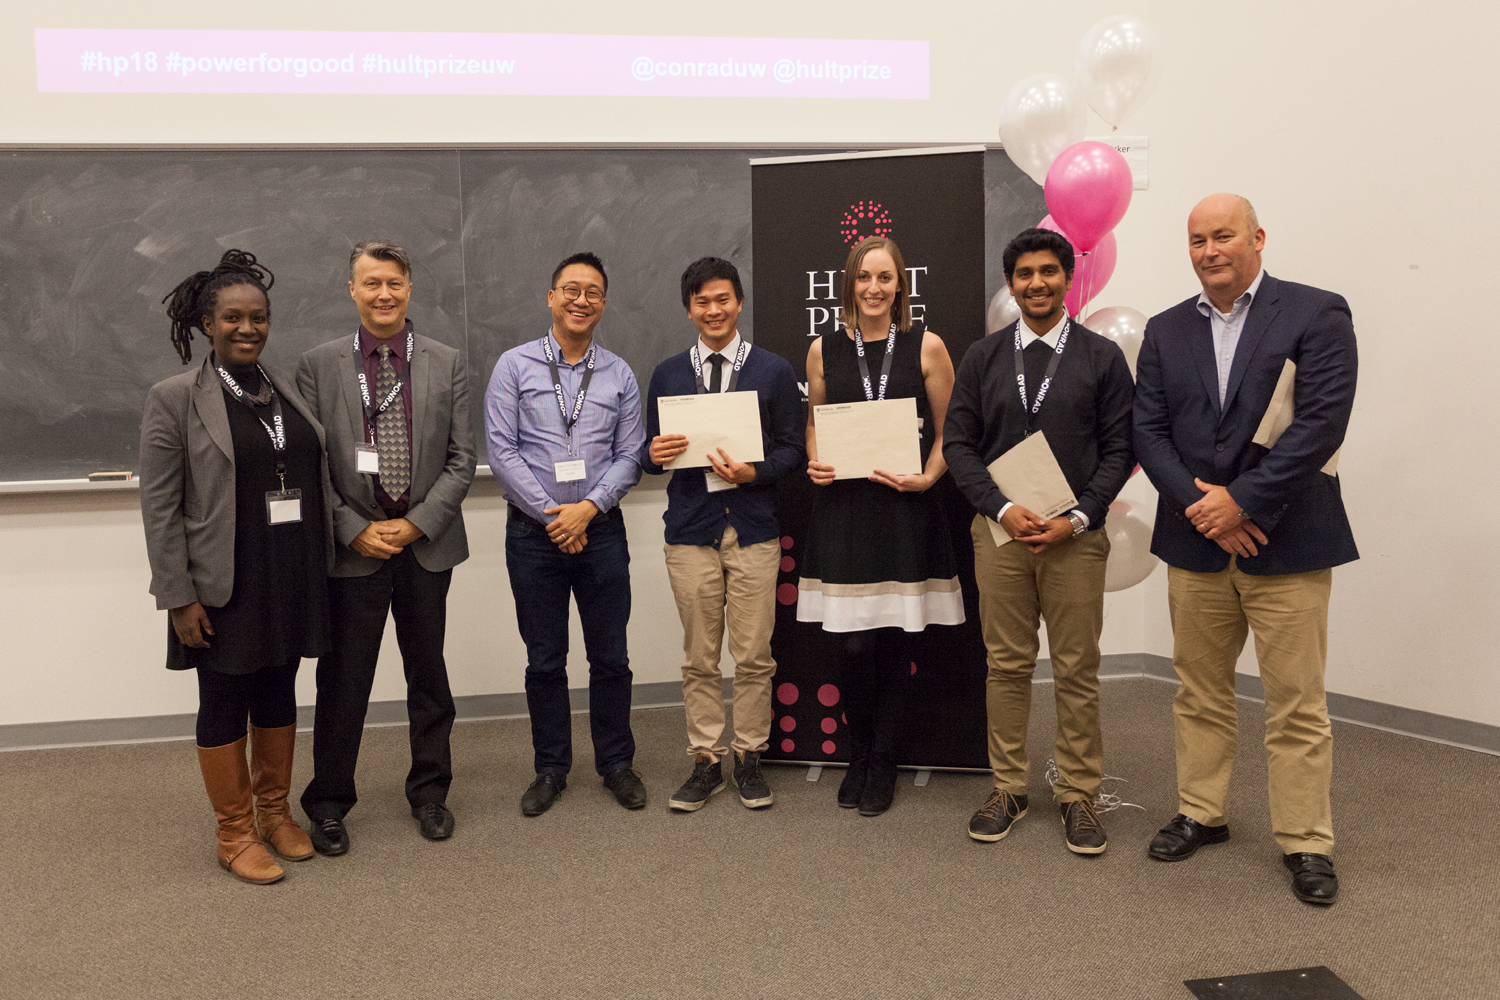 Team Catalight wins first prize at the Hult Prize UWaterloo Finals